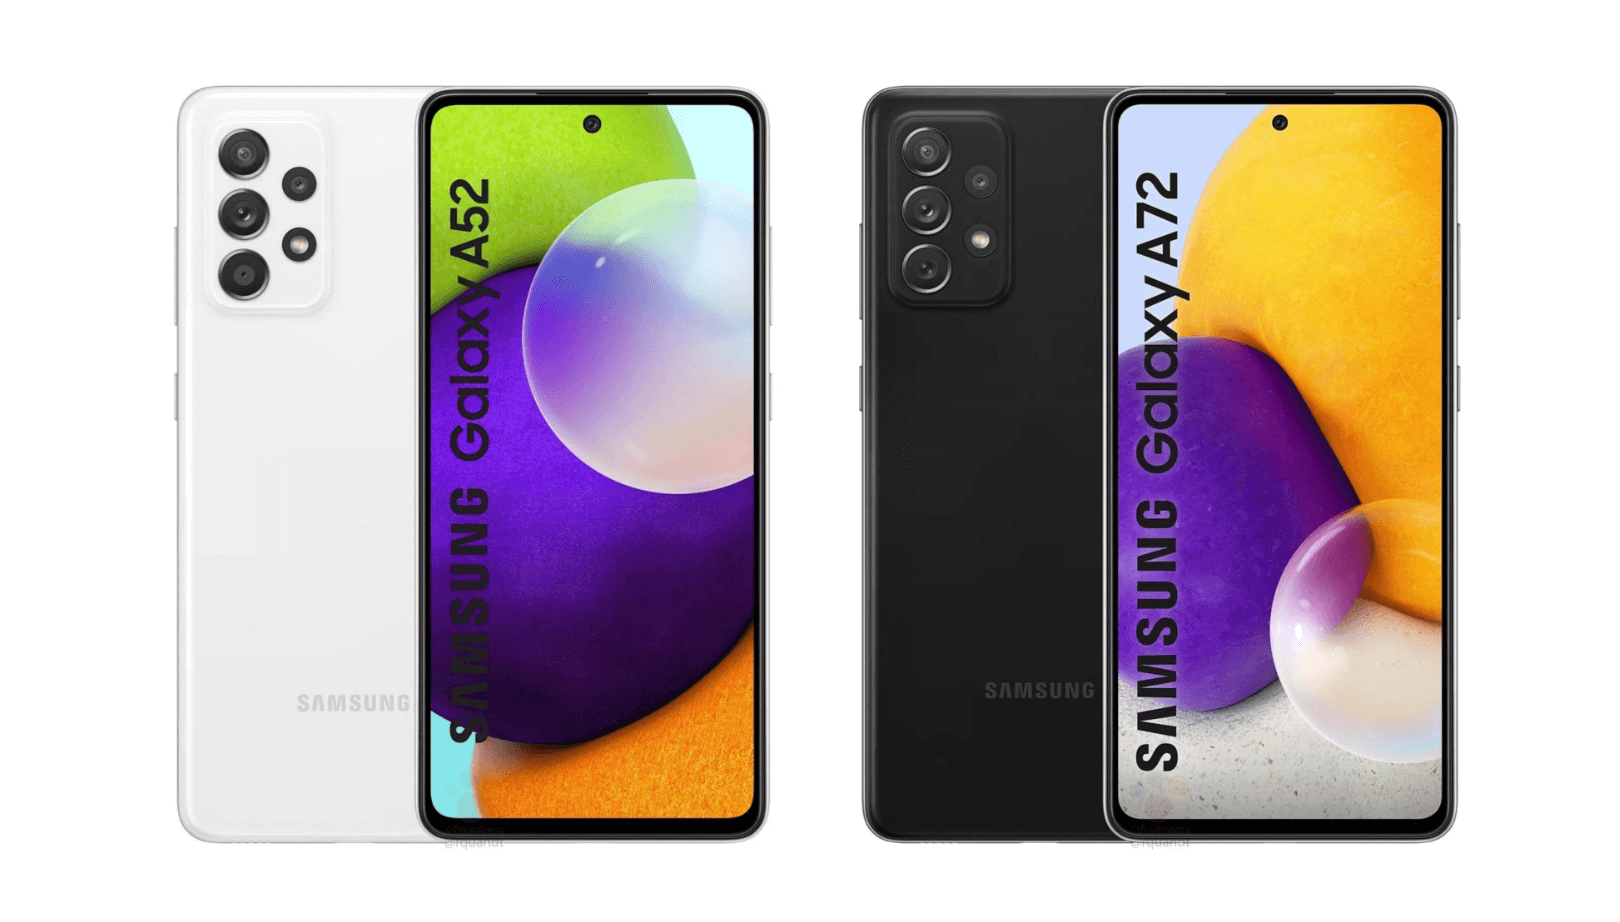 Samsung Galaxy A52 and Galaxy A72 Press Renders | Source: WinFuture